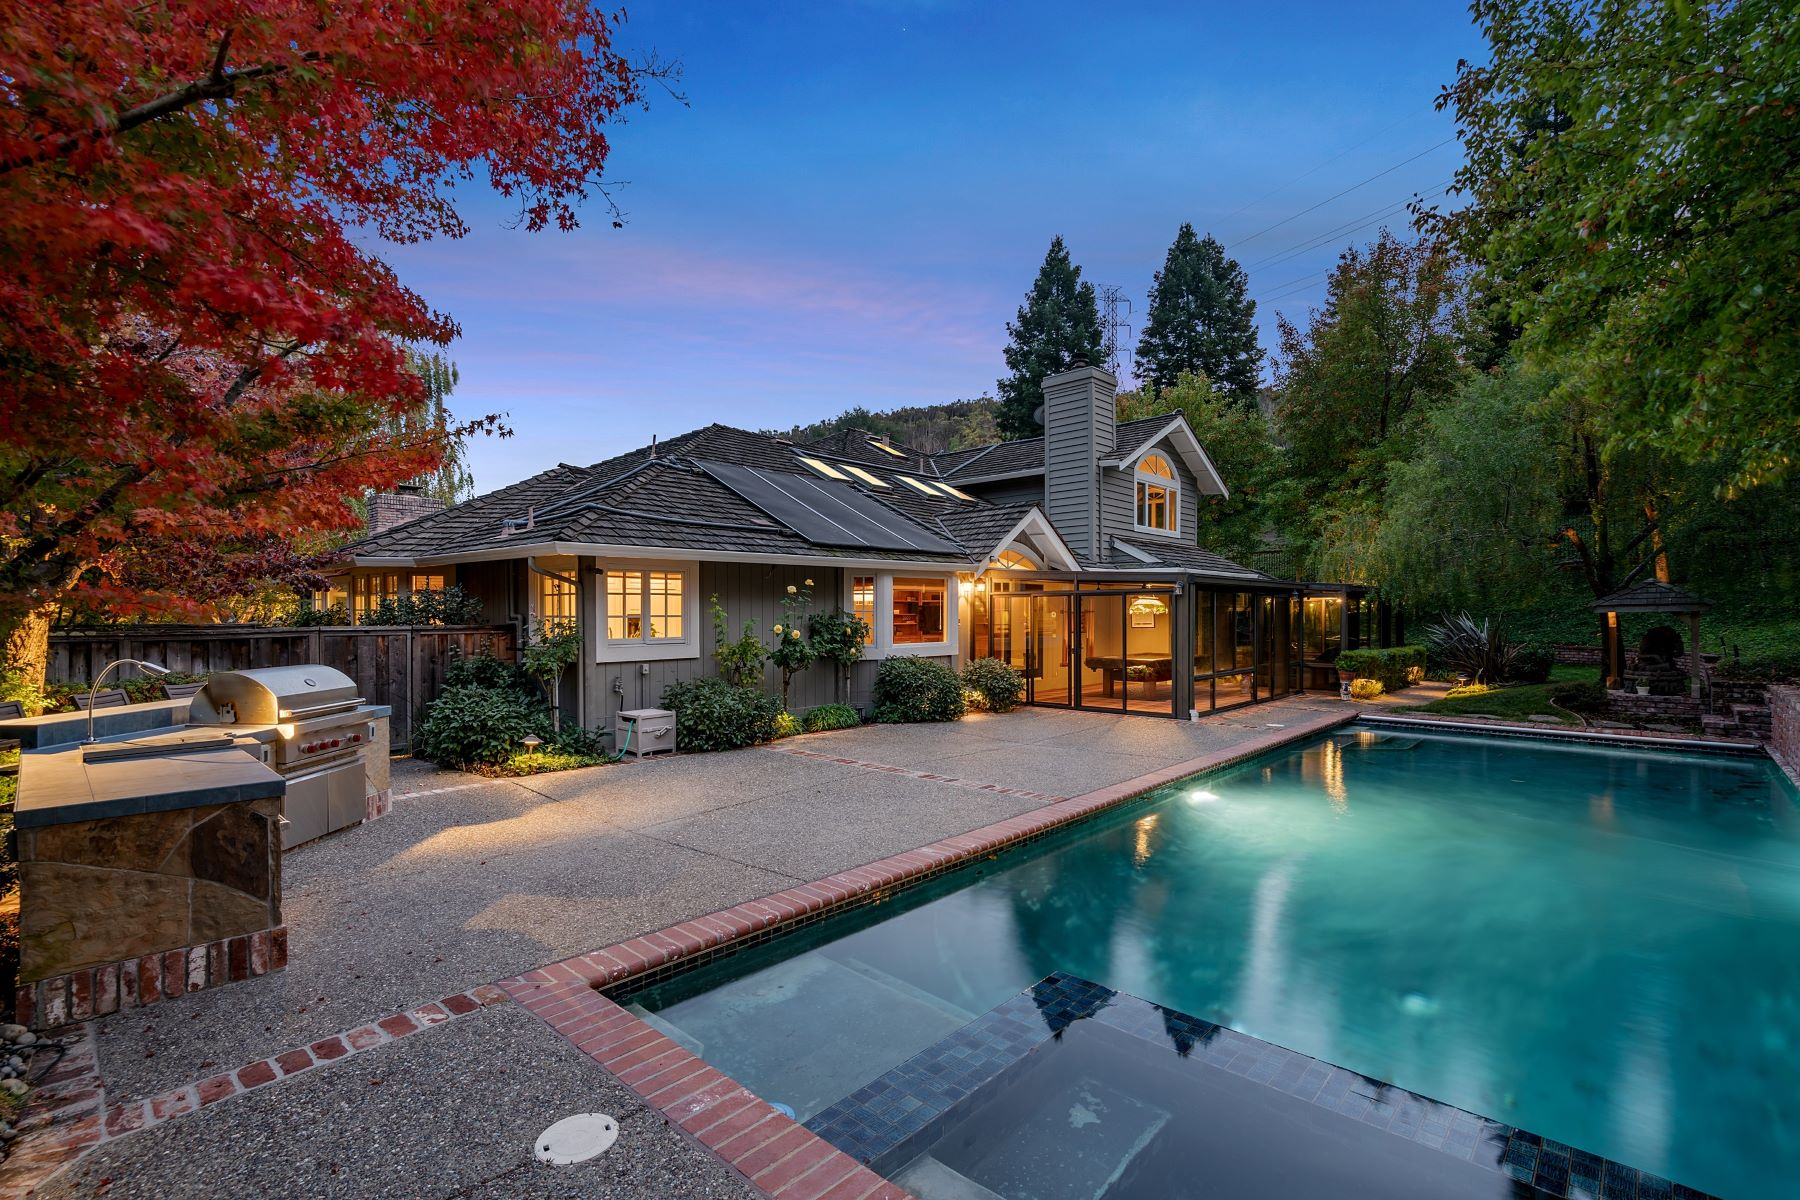 Single Family Homes for Sale at Spectacular Estate In Gated Community 6 Hastings Court Moraga, California 94556 United States